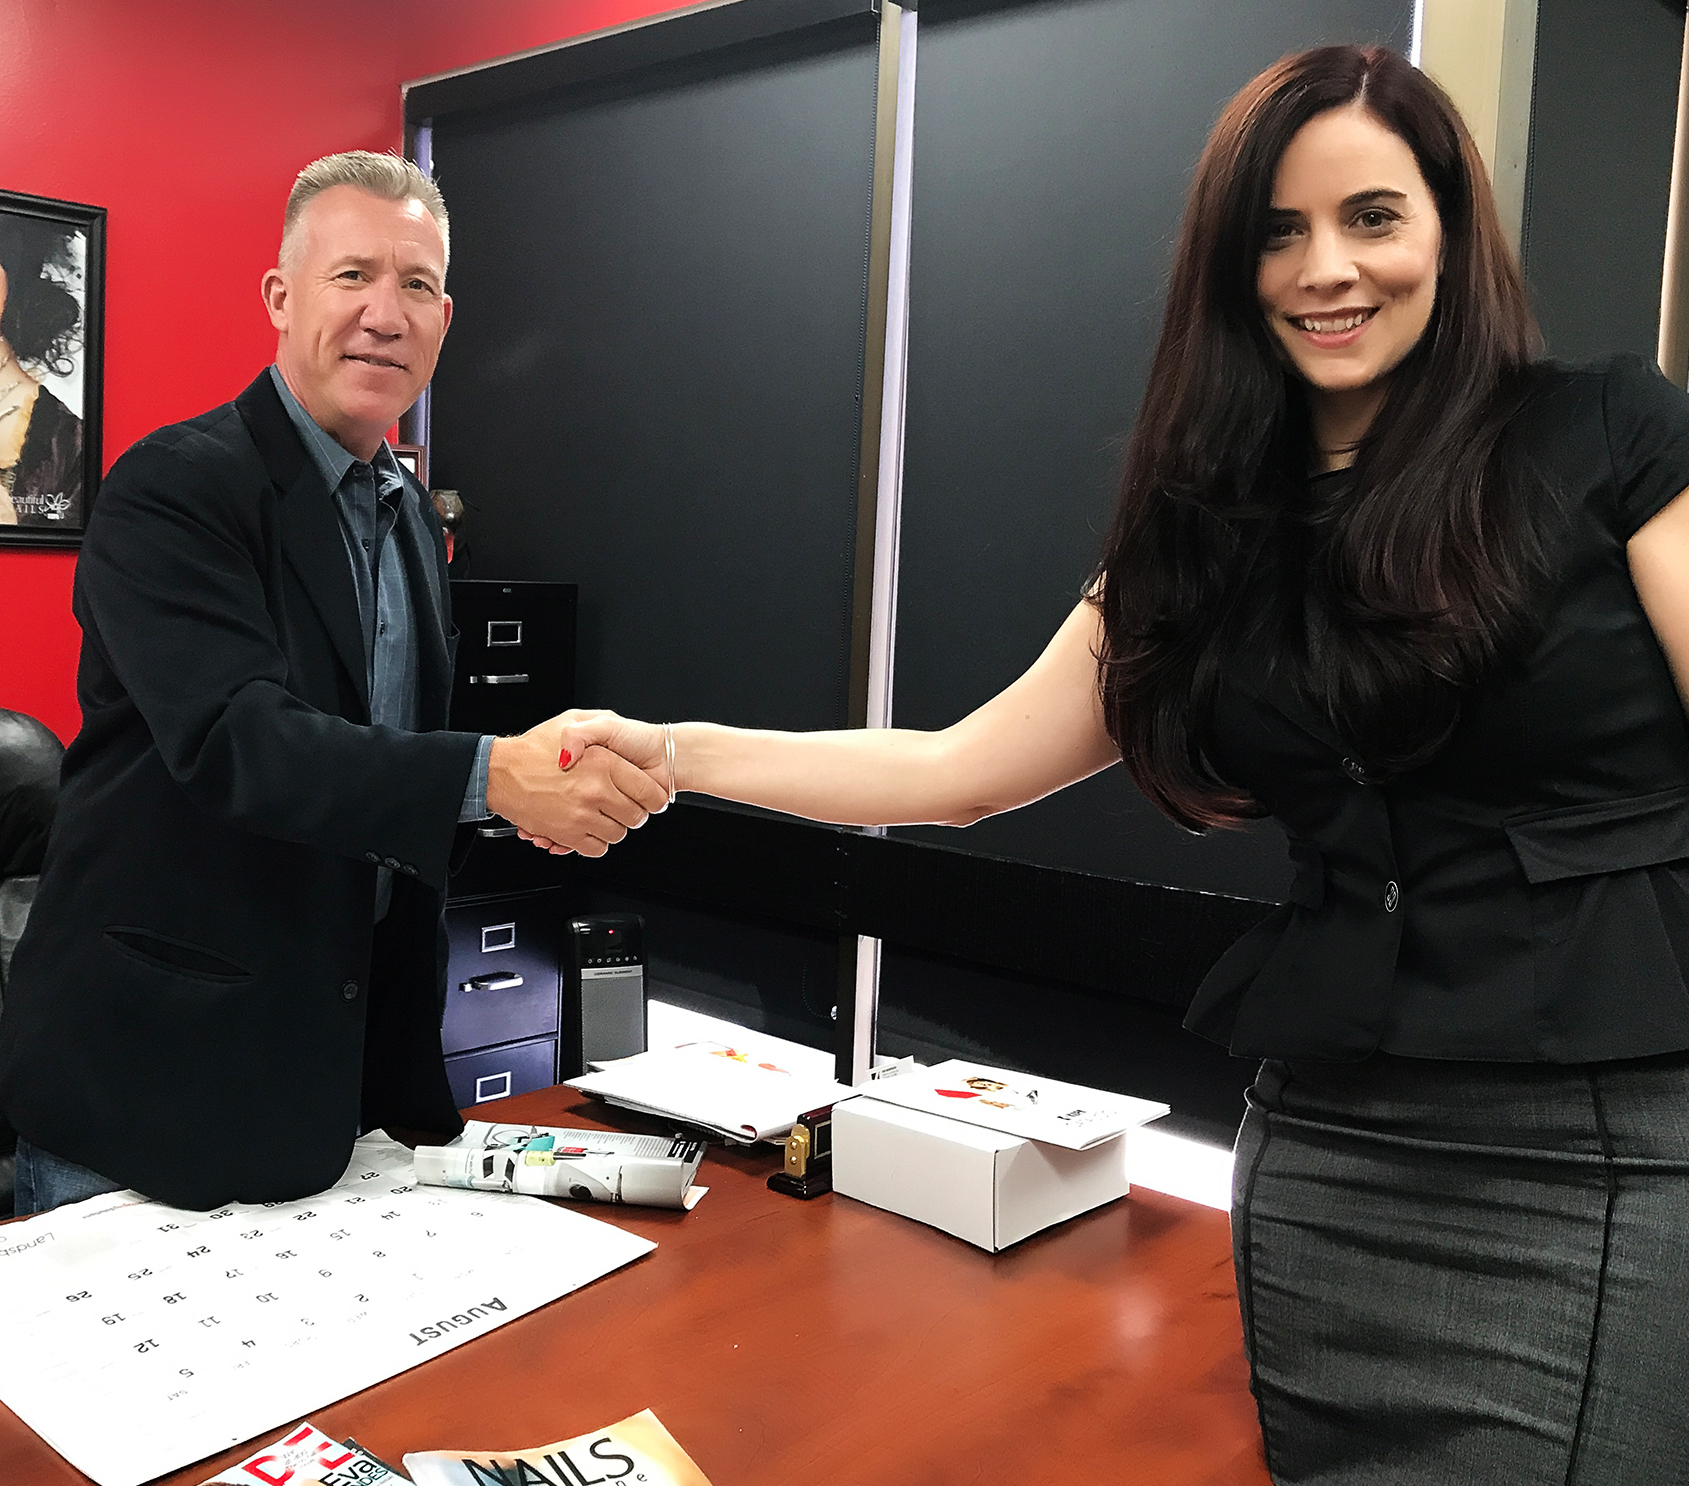 Richard Hunter, CEO of Kupa Inc., and Elaine Watson, executive vice president of Nailebrity, will be working together to expand Kupa's international presence.